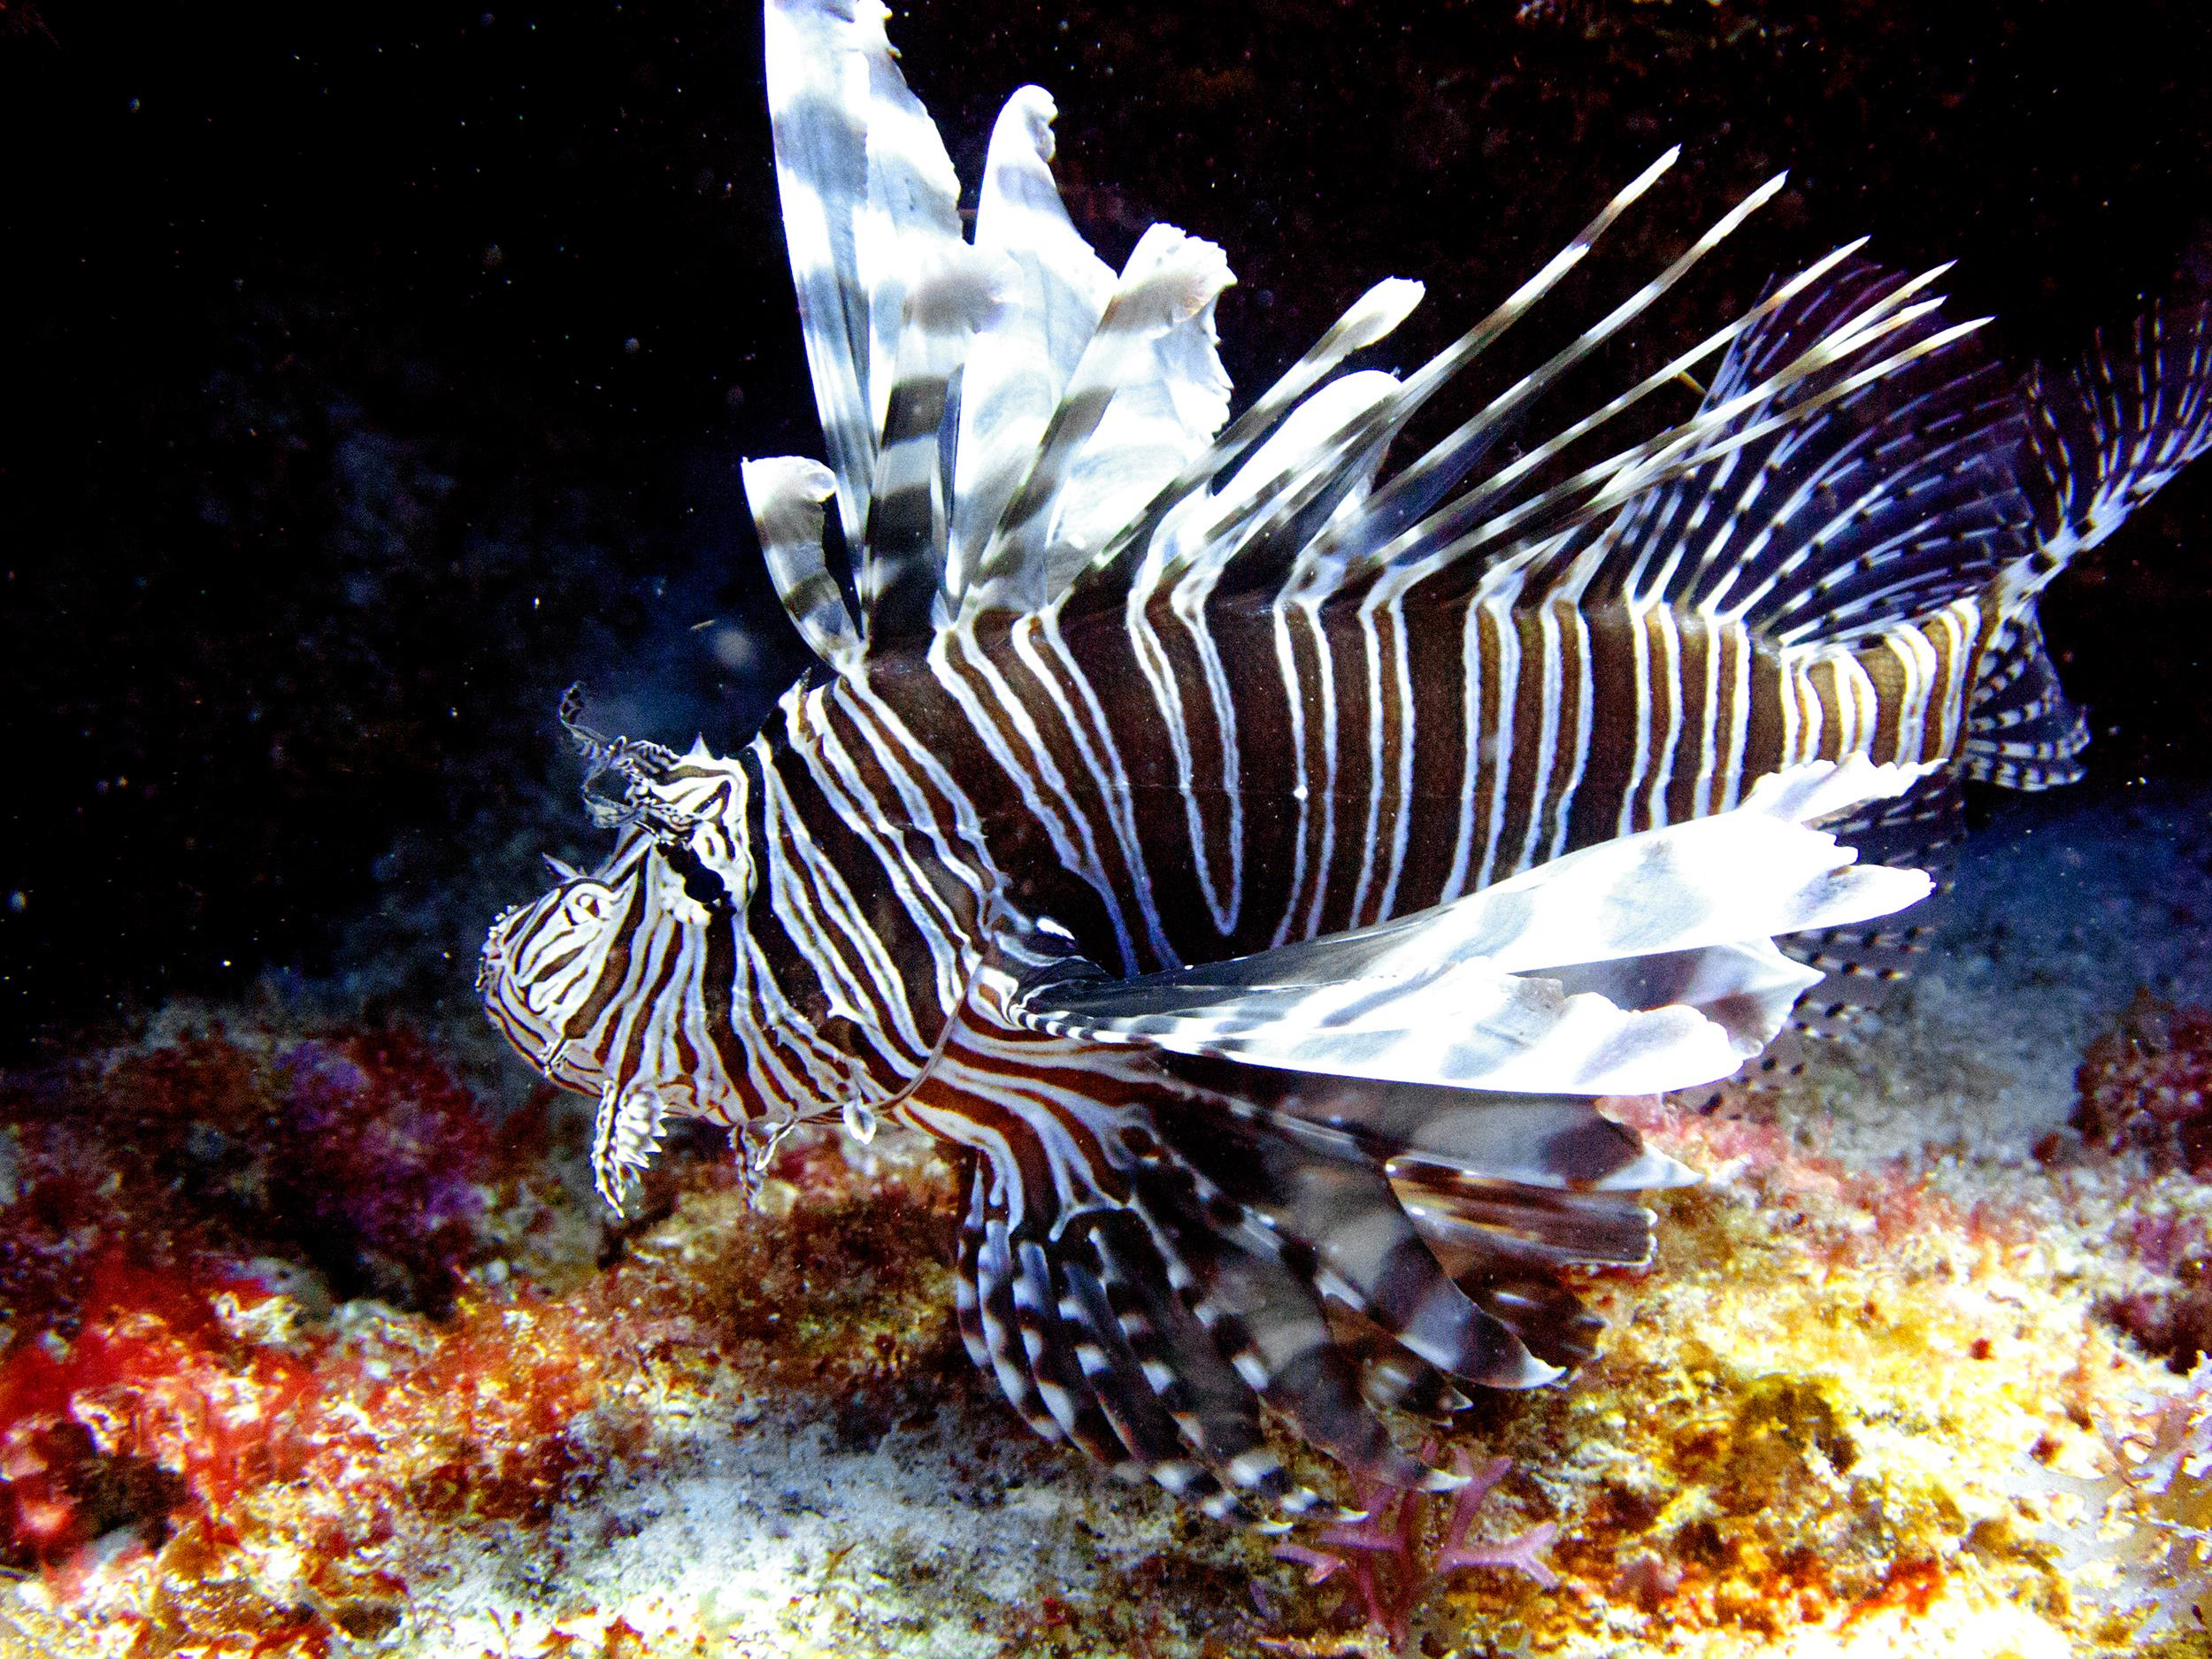 Image: A lionfish swims near coral off the Caribbean island of Bonaire